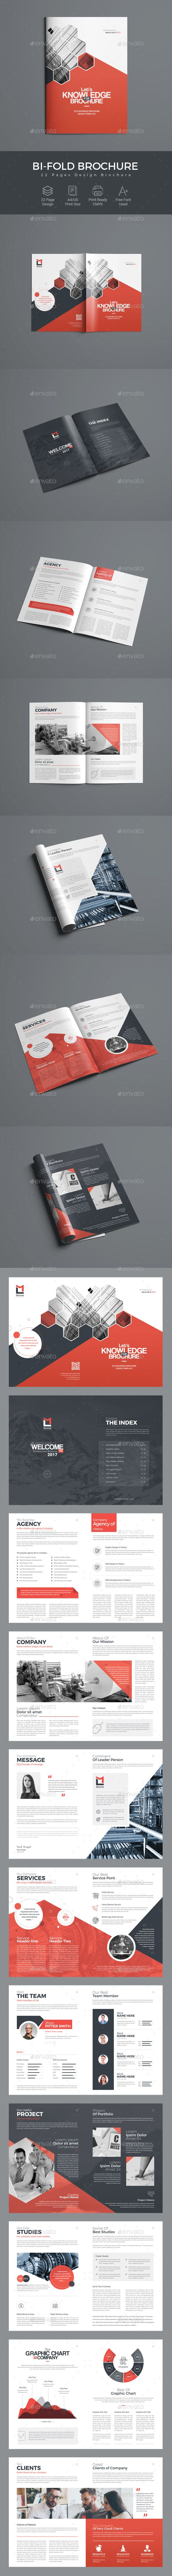 BiFold Brochure — Photoshop PSD #brochure #logo • Download ➝ https://graphicriver.net/item/bifold-brochure/19679864?ref=pxcr